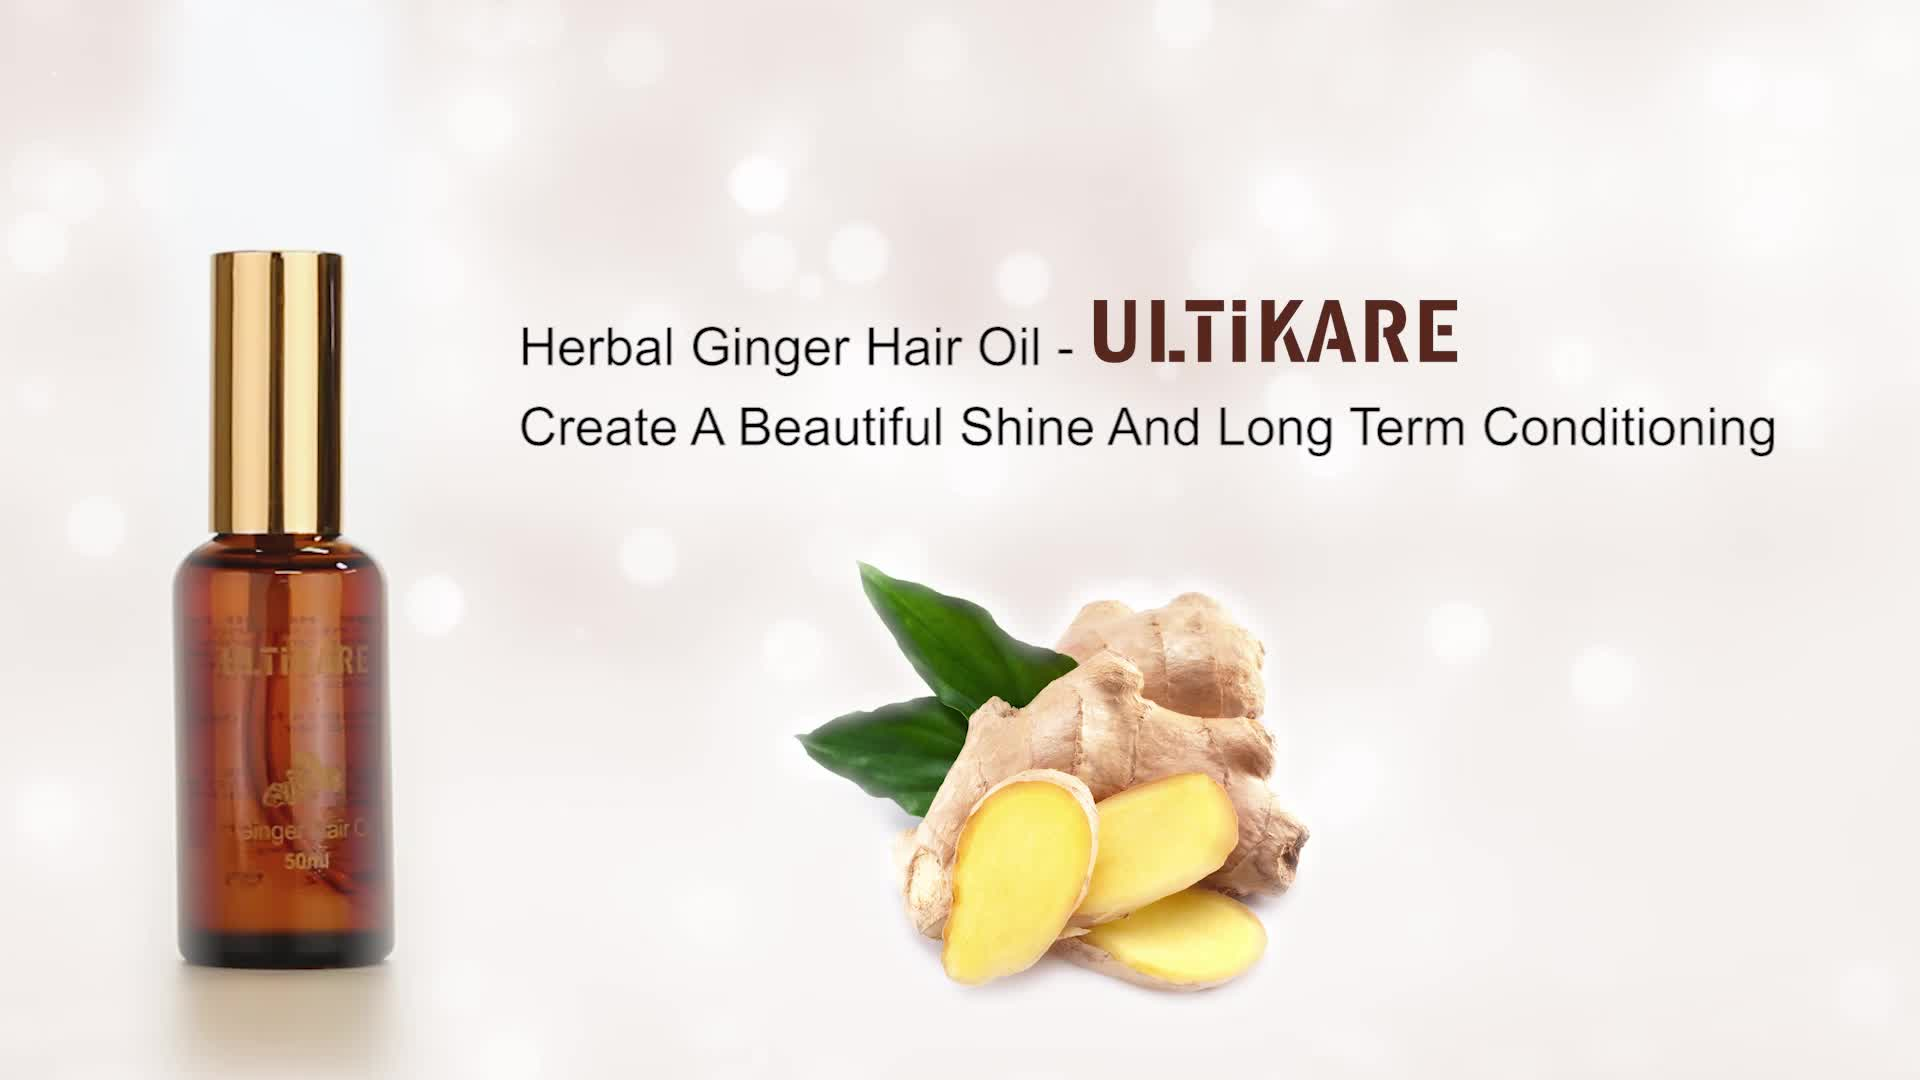 Private label oem India 100% natural hair growth oil ginger herbal hair care products